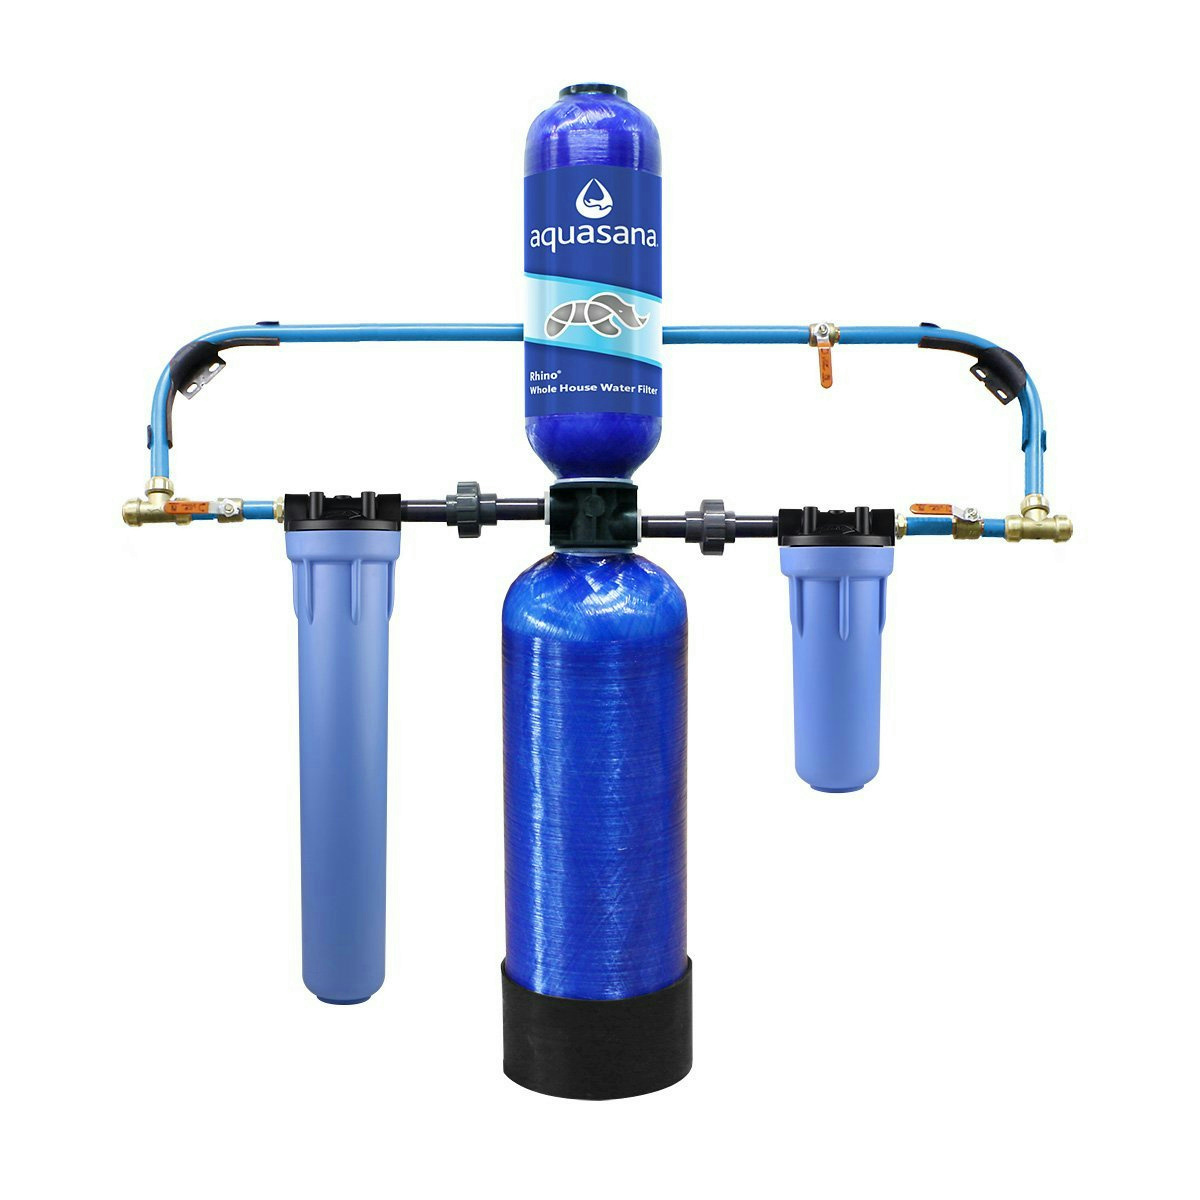 aquasana eq 1000 amzn whole house water filtration system retails 1 171 19 ebay. Black Bedroom Furniture Sets. Home Design Ideas